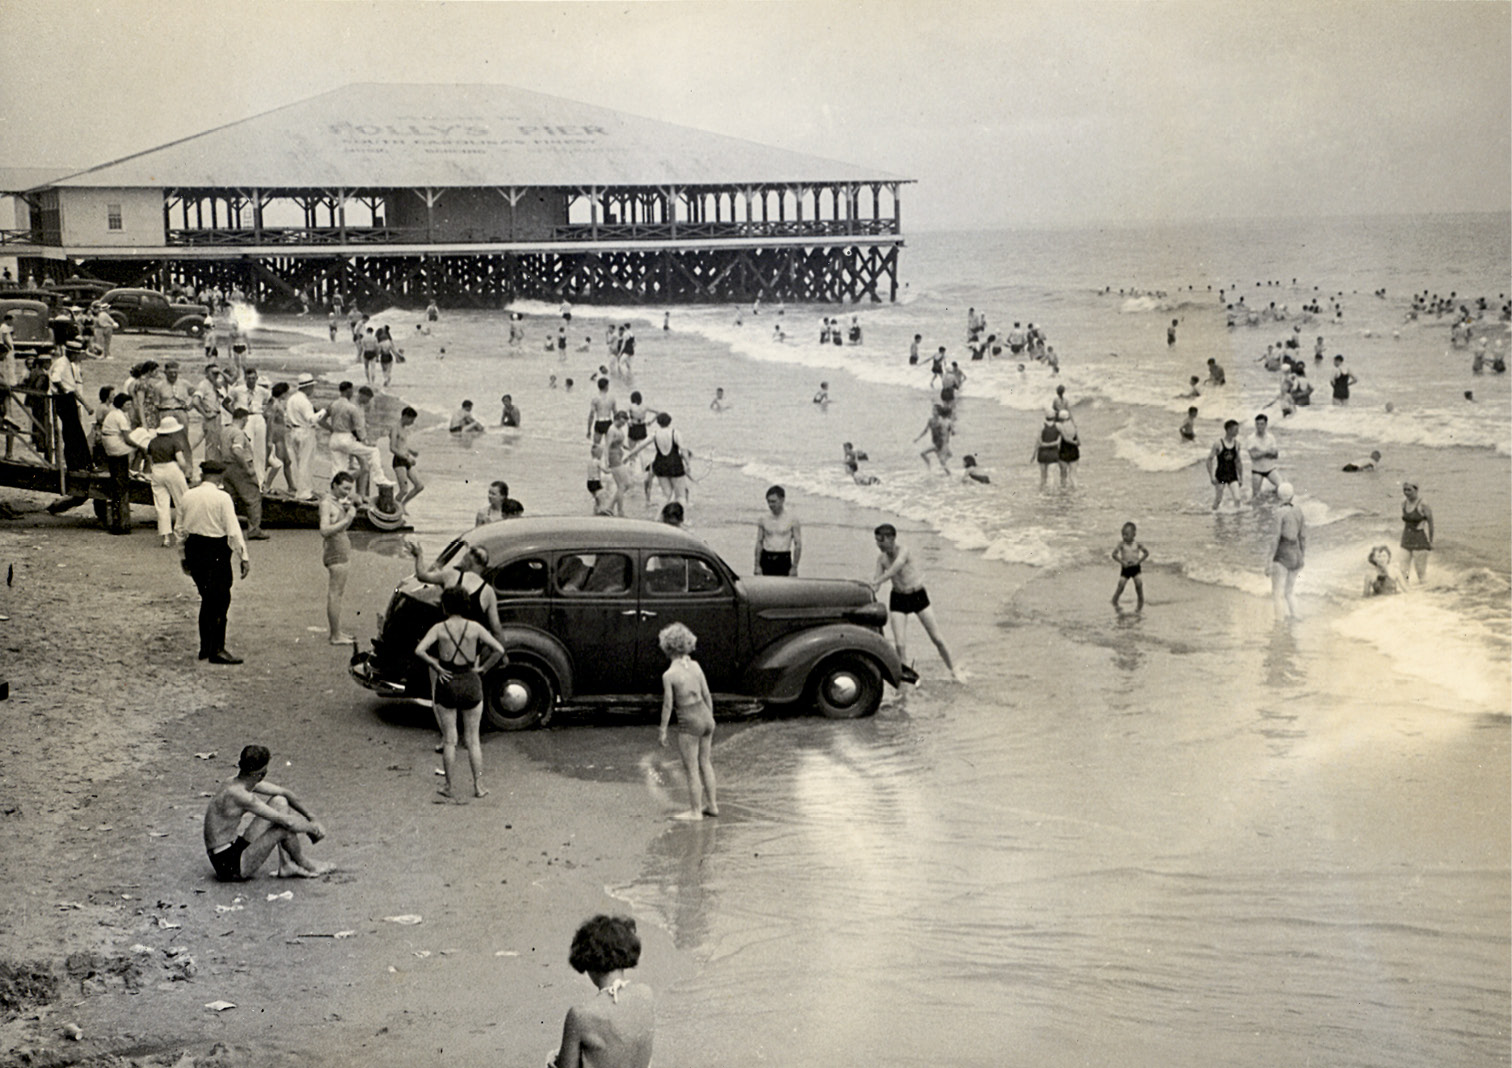 A car parked on the beach gets caught in the incoming tide, circa 1950.